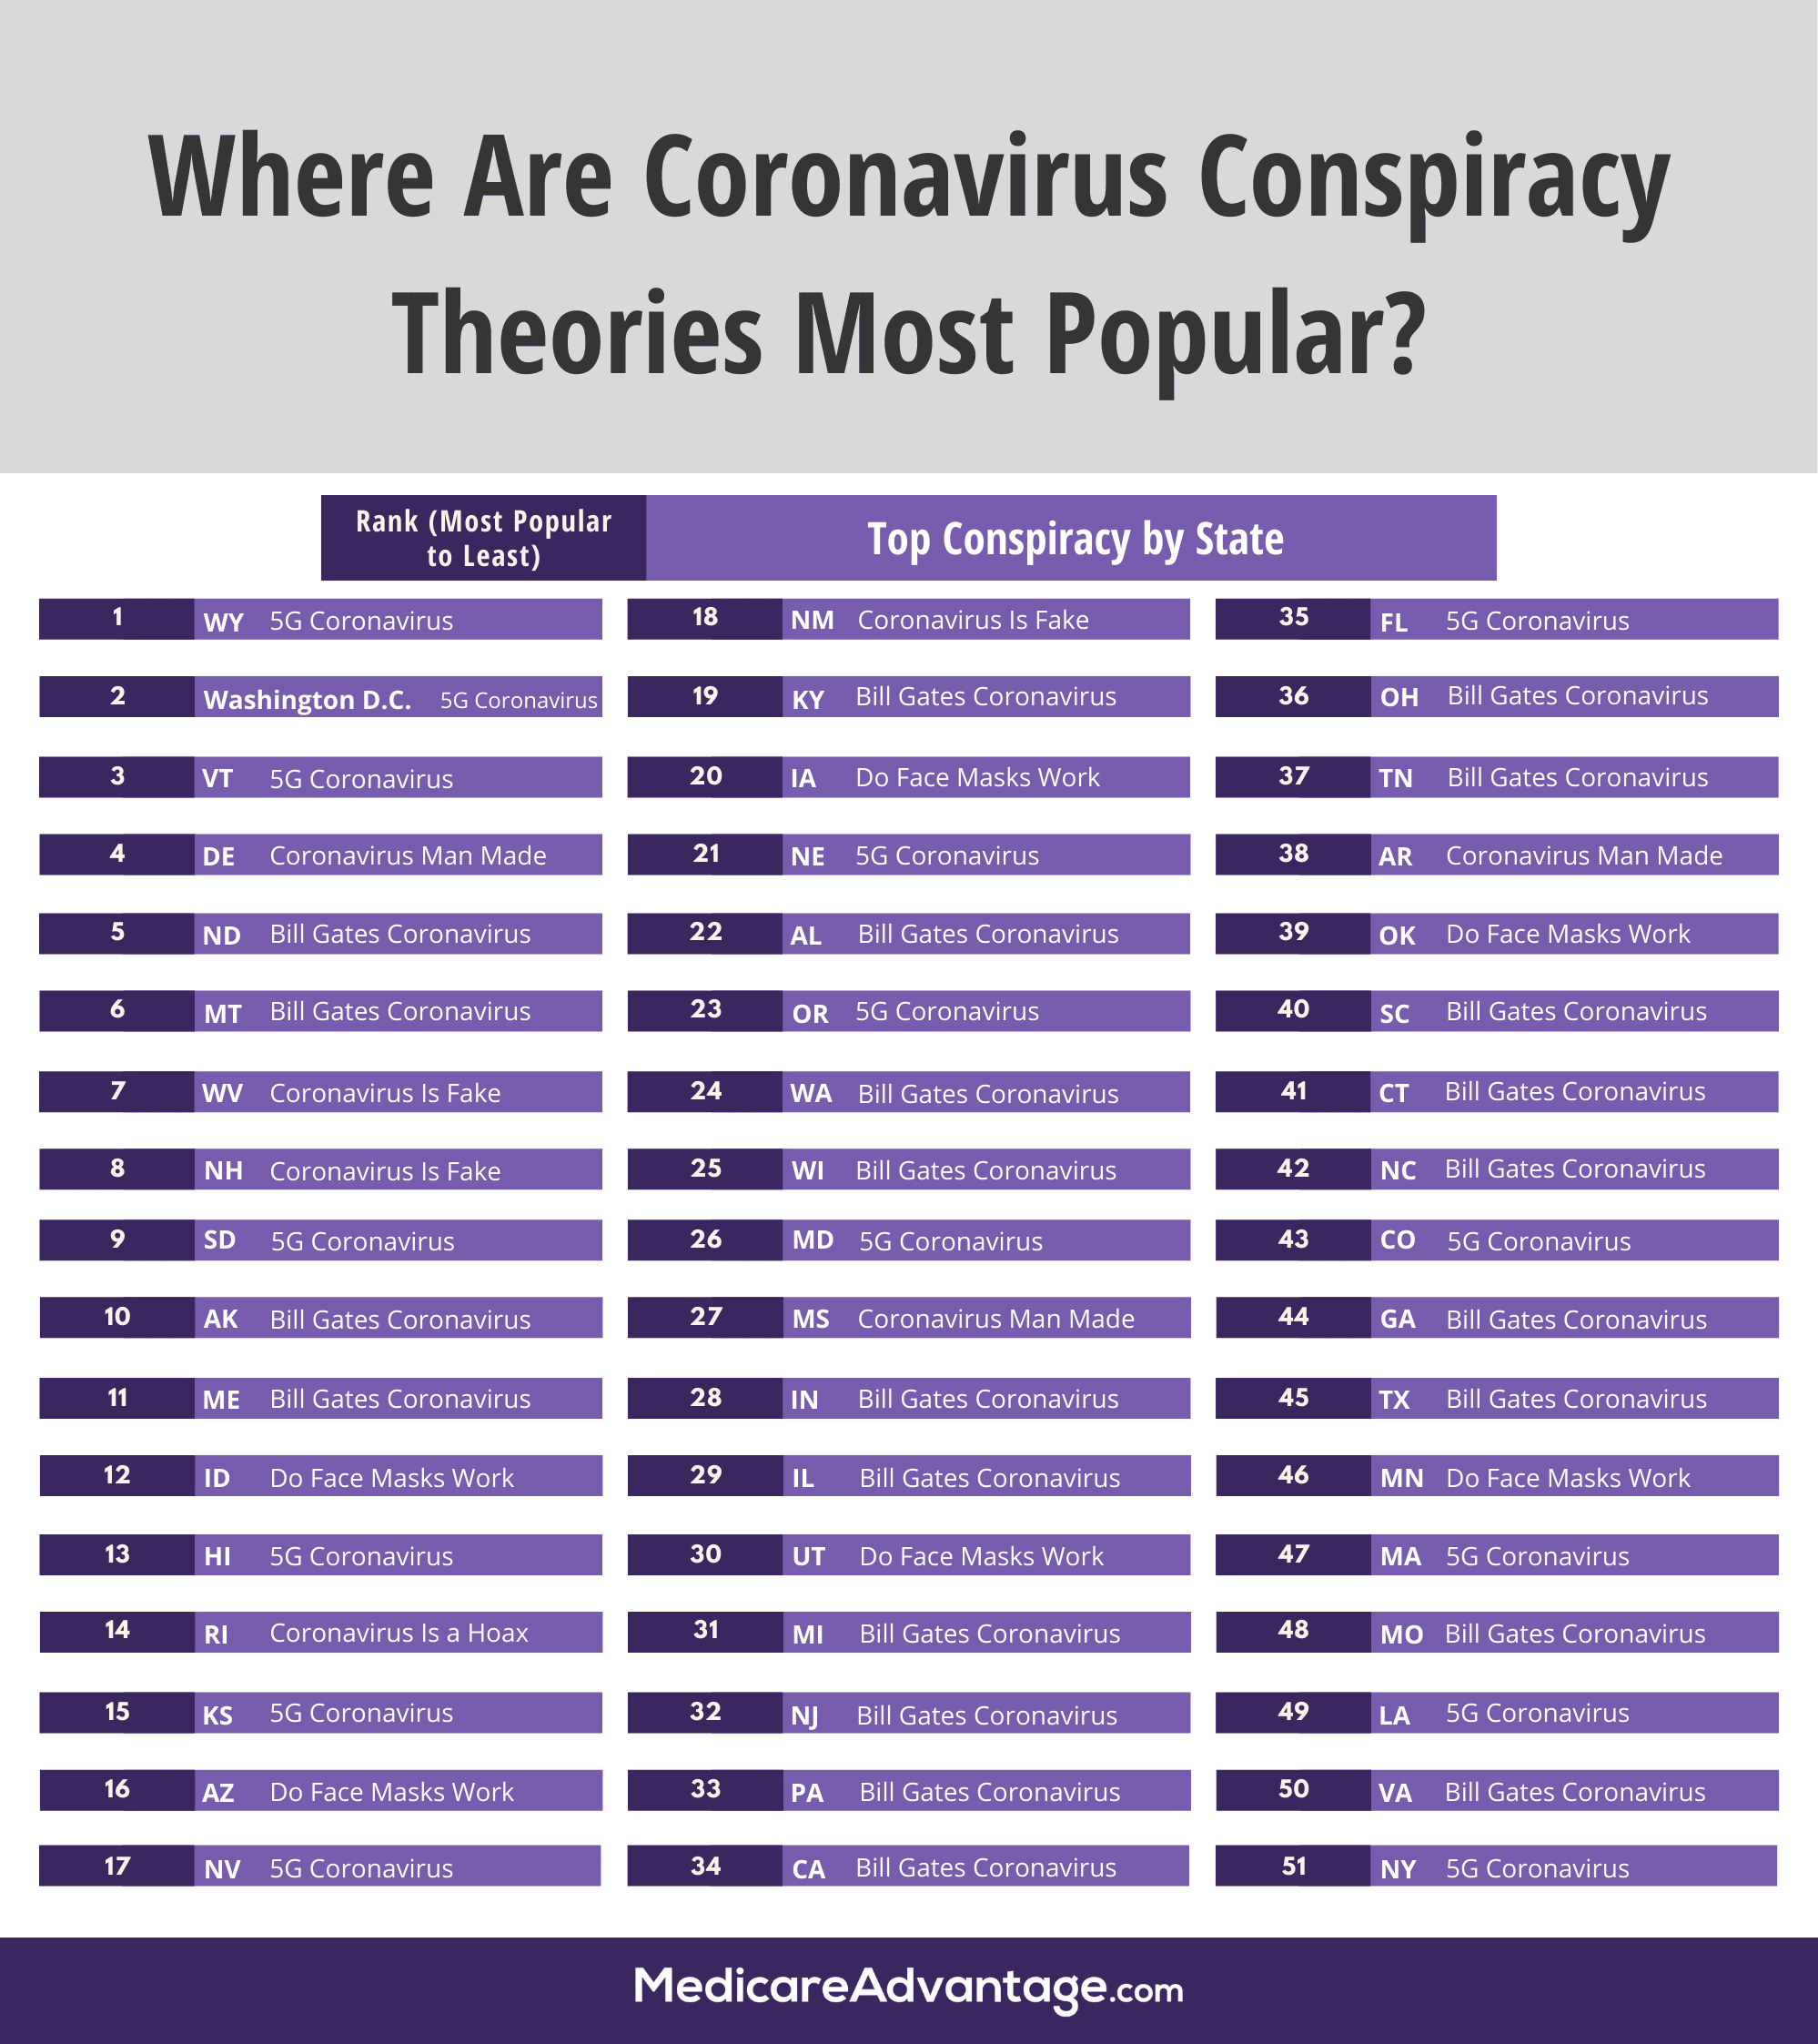 States ranked by how popular coronavirus conspiracy theory searches are in the sate, including most popular search term